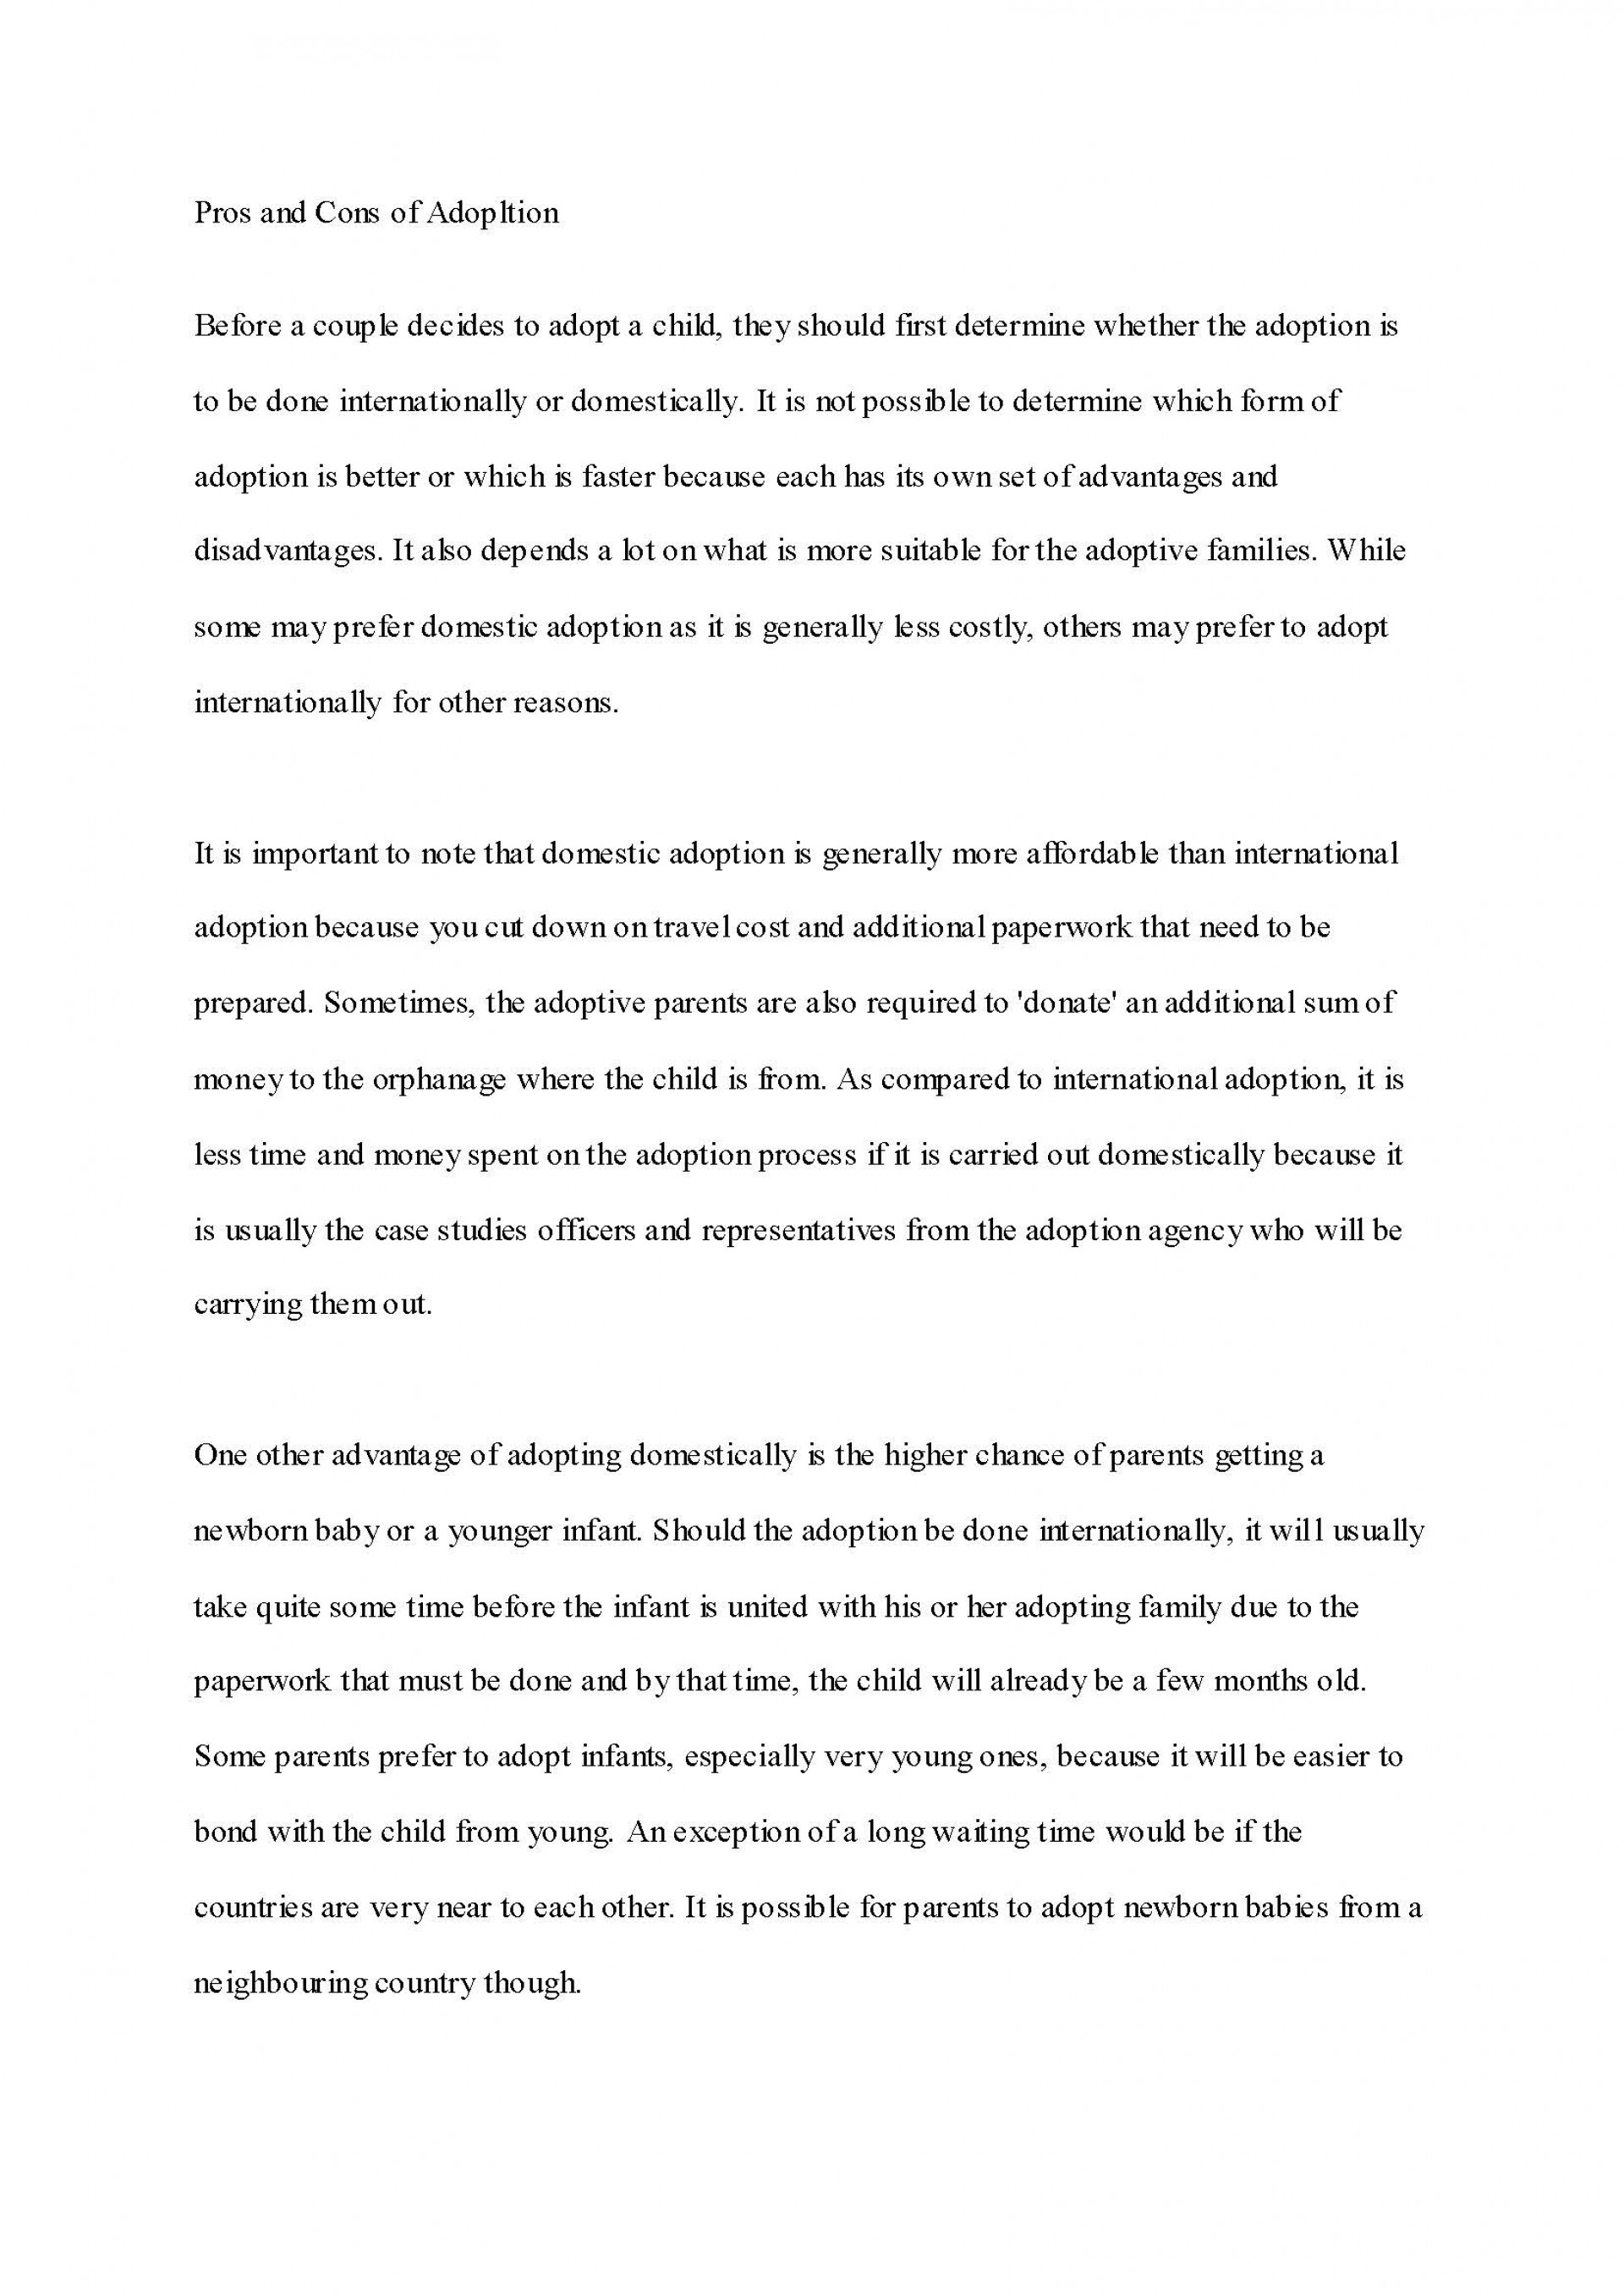 003 Example Essays Essay Adoption Unusual Narrative In Apa Format Free Sample For Middle School Students College Ucla 1920